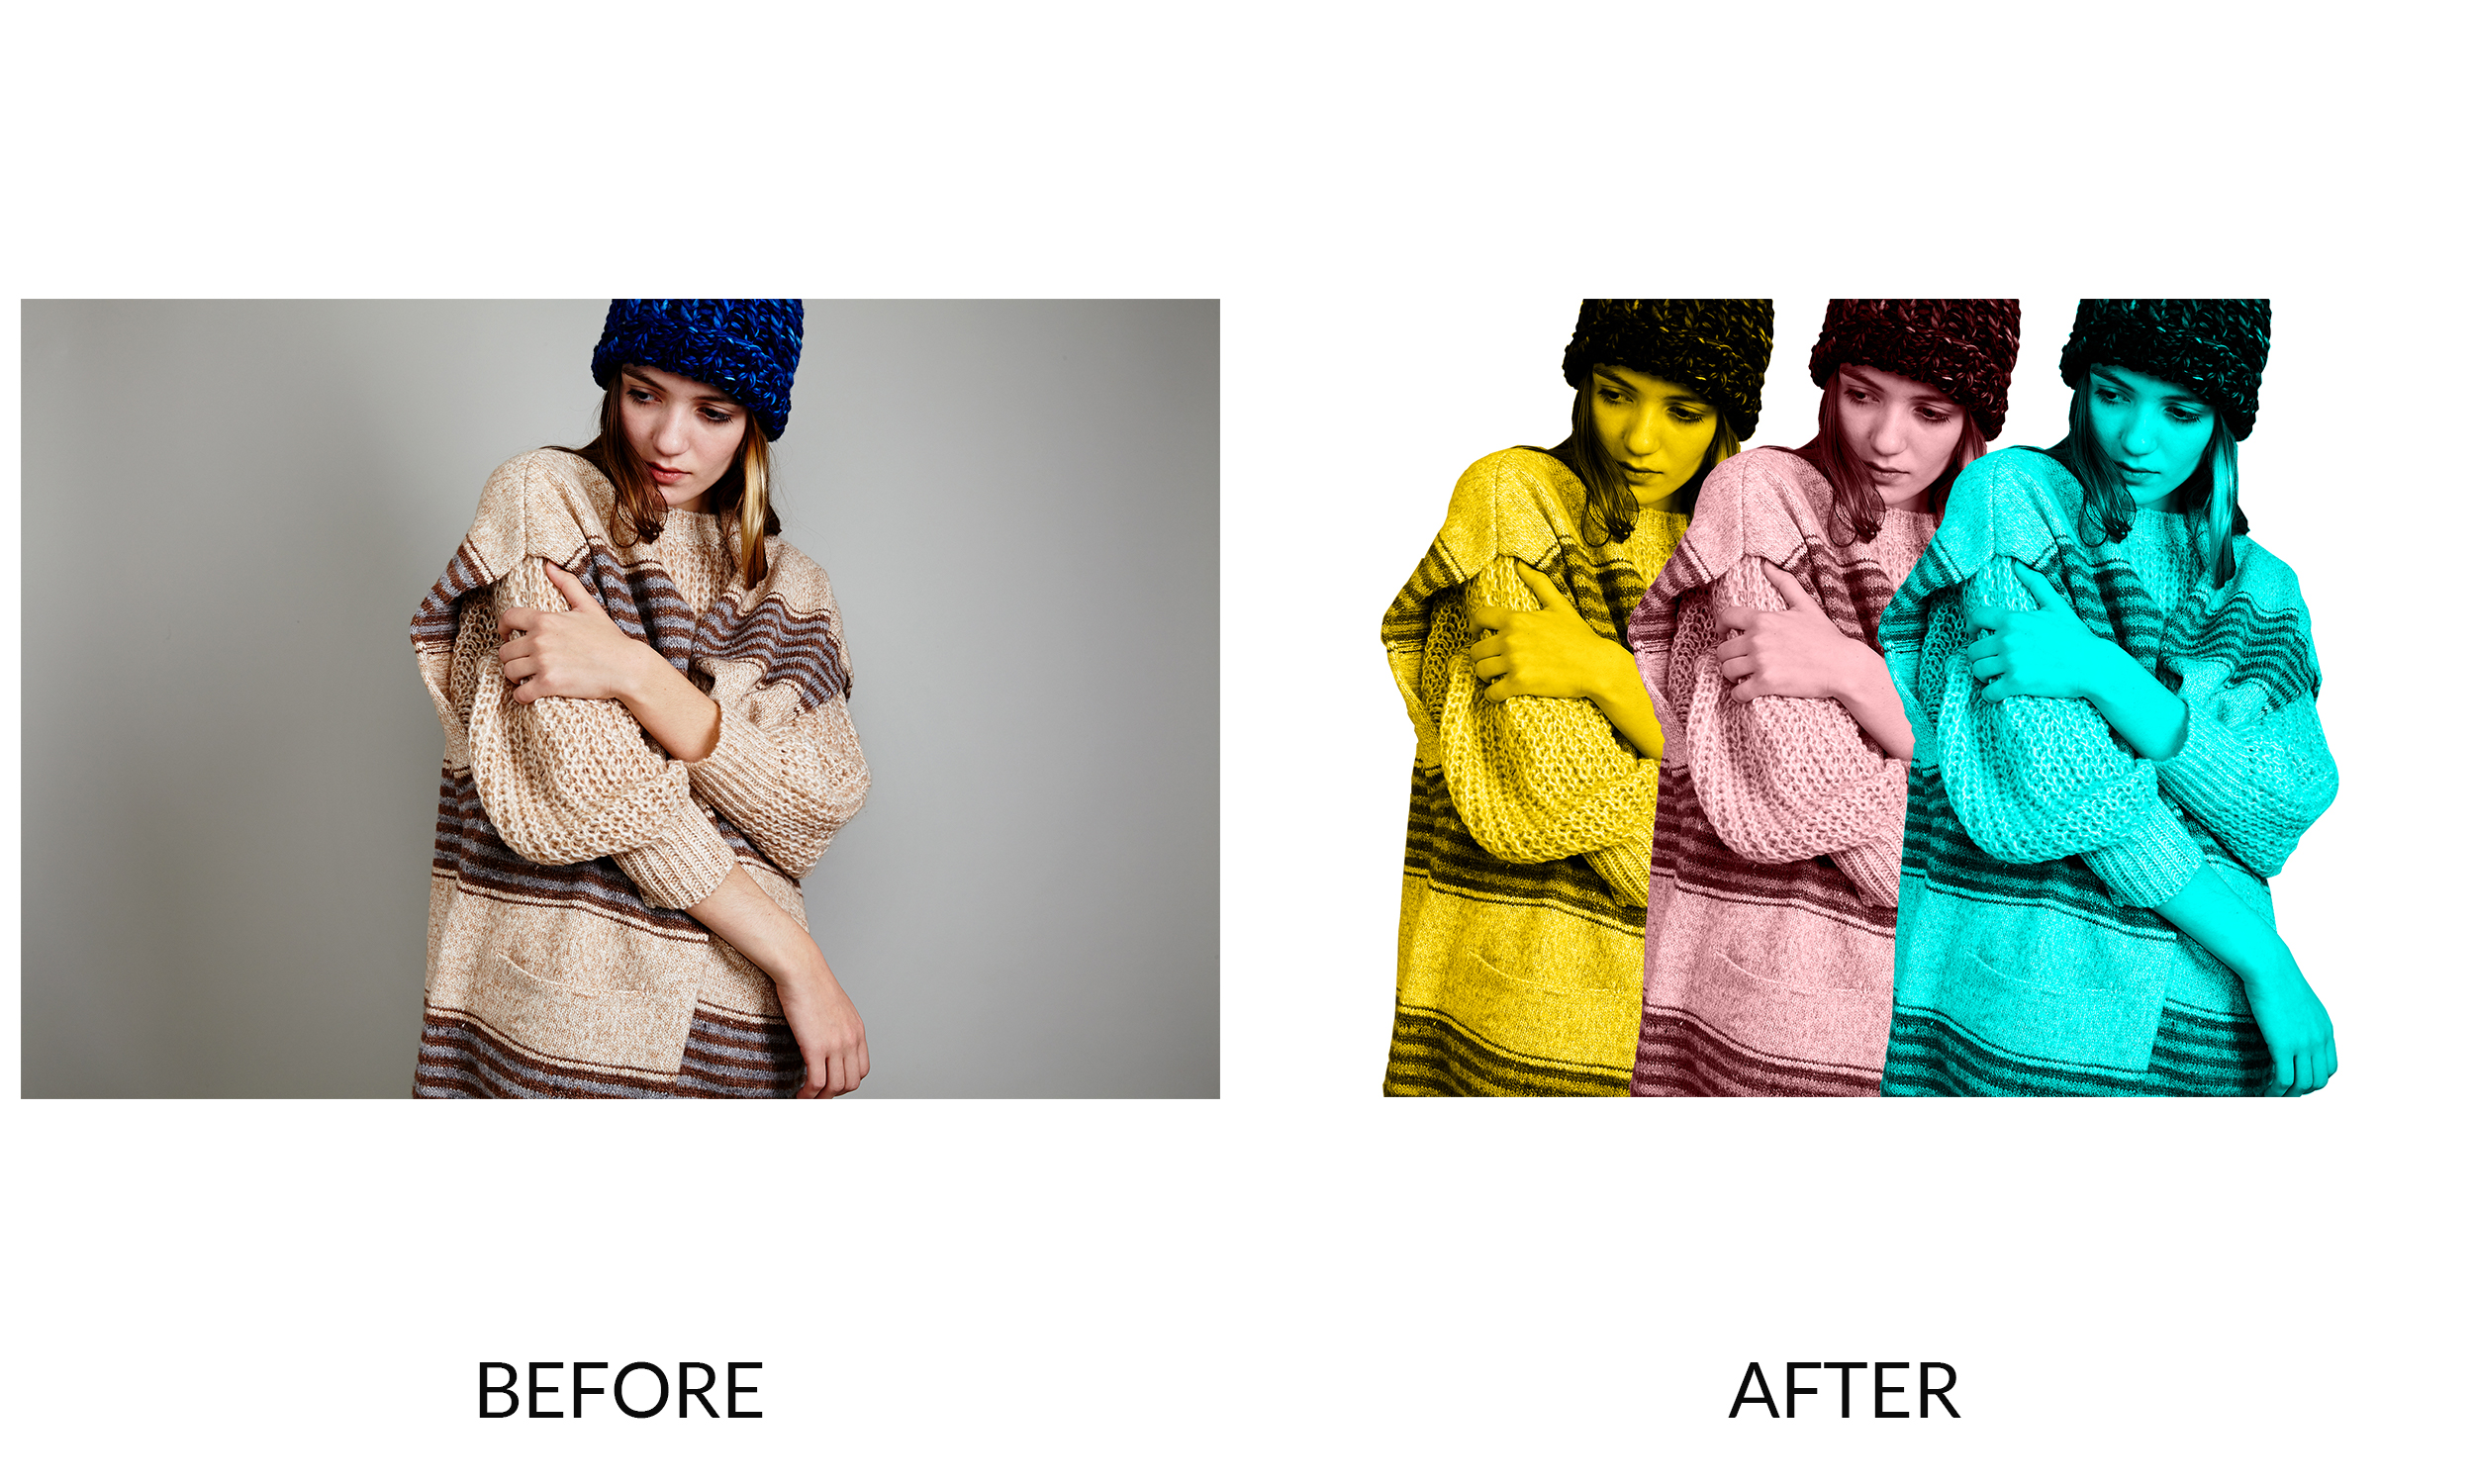 Squarespace_ACheng_BeforeAfter_03.jpg